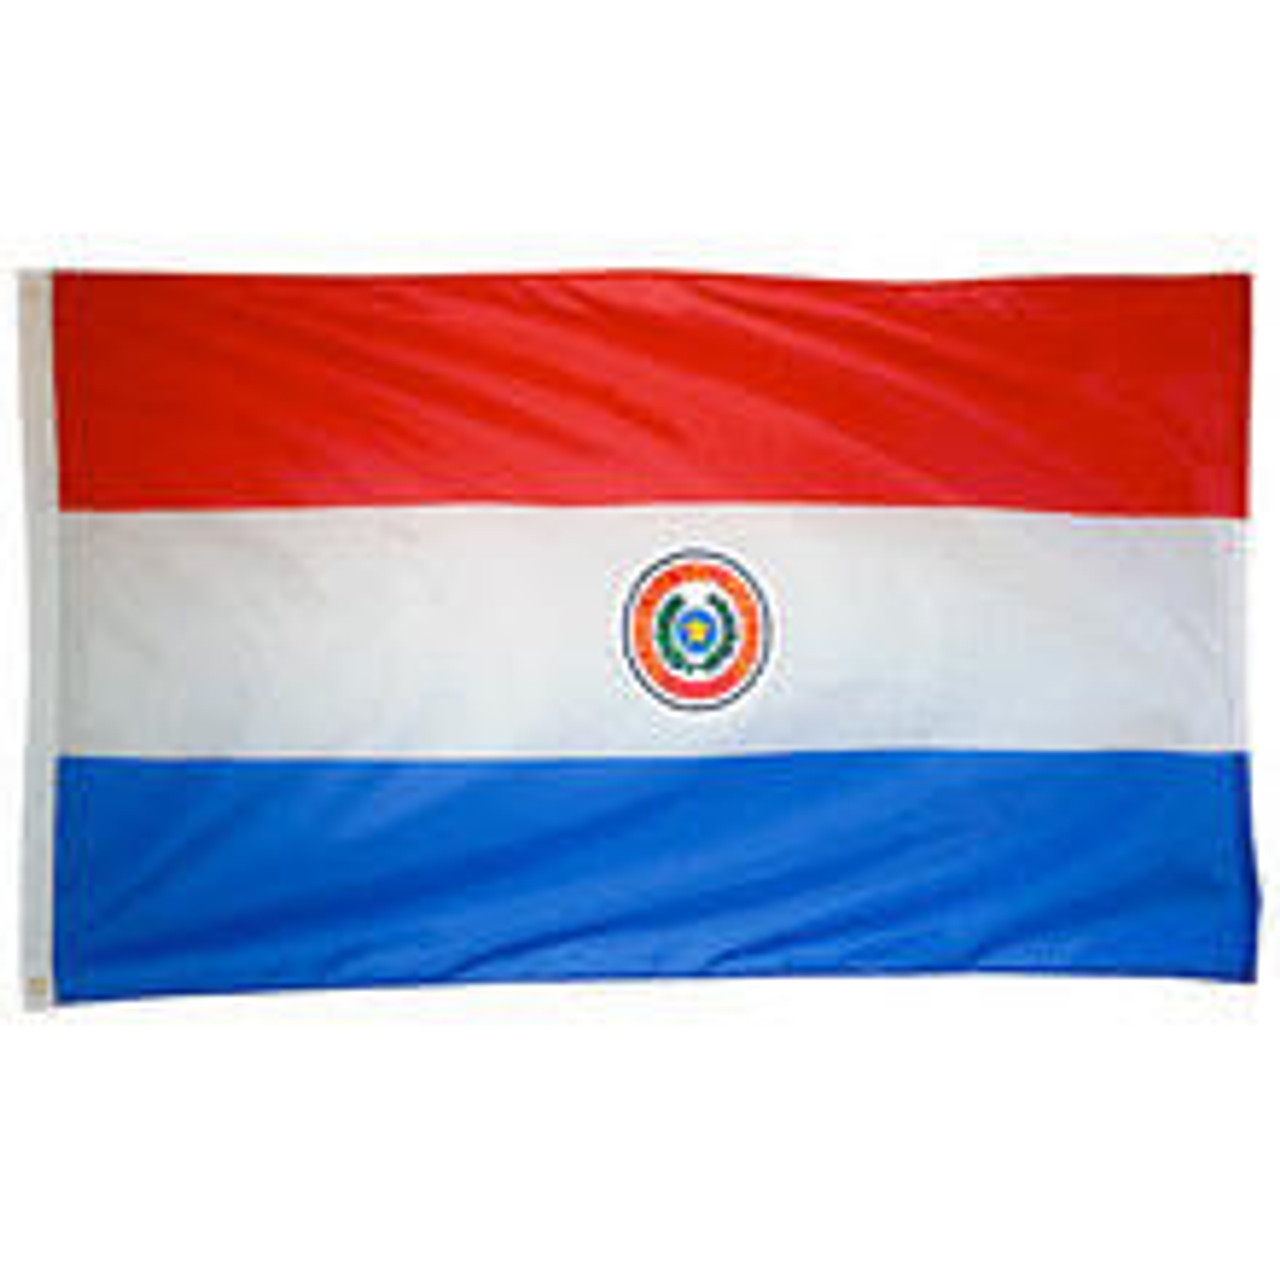 A Paraguay Flag made of nylon with lock stitching, polyester canvas heading, and brass grommets. Design is three horizontal stripes red, white, and blue and a national coat of arms emblem in the center.